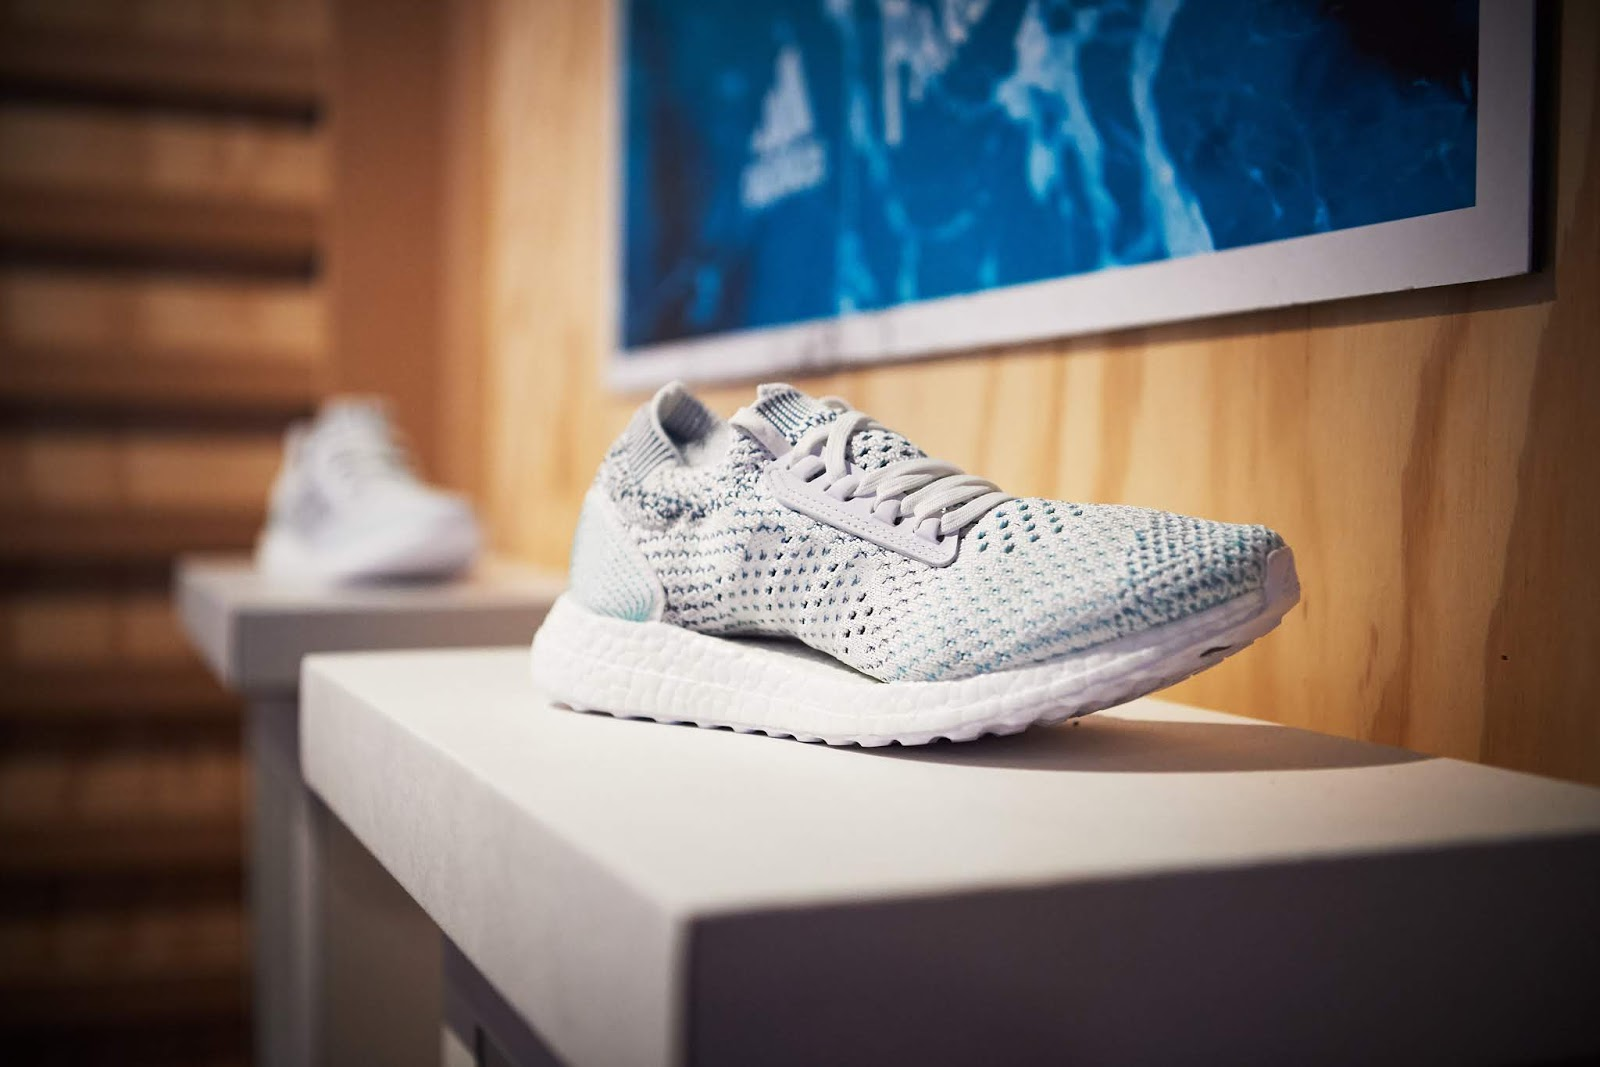 5770fe5d14177 Showcased at the event was the limited-release UltraBOOST Parley and UltraBOOST  X shoes. One pair is made from approximately 11 plastic bottles from the ...